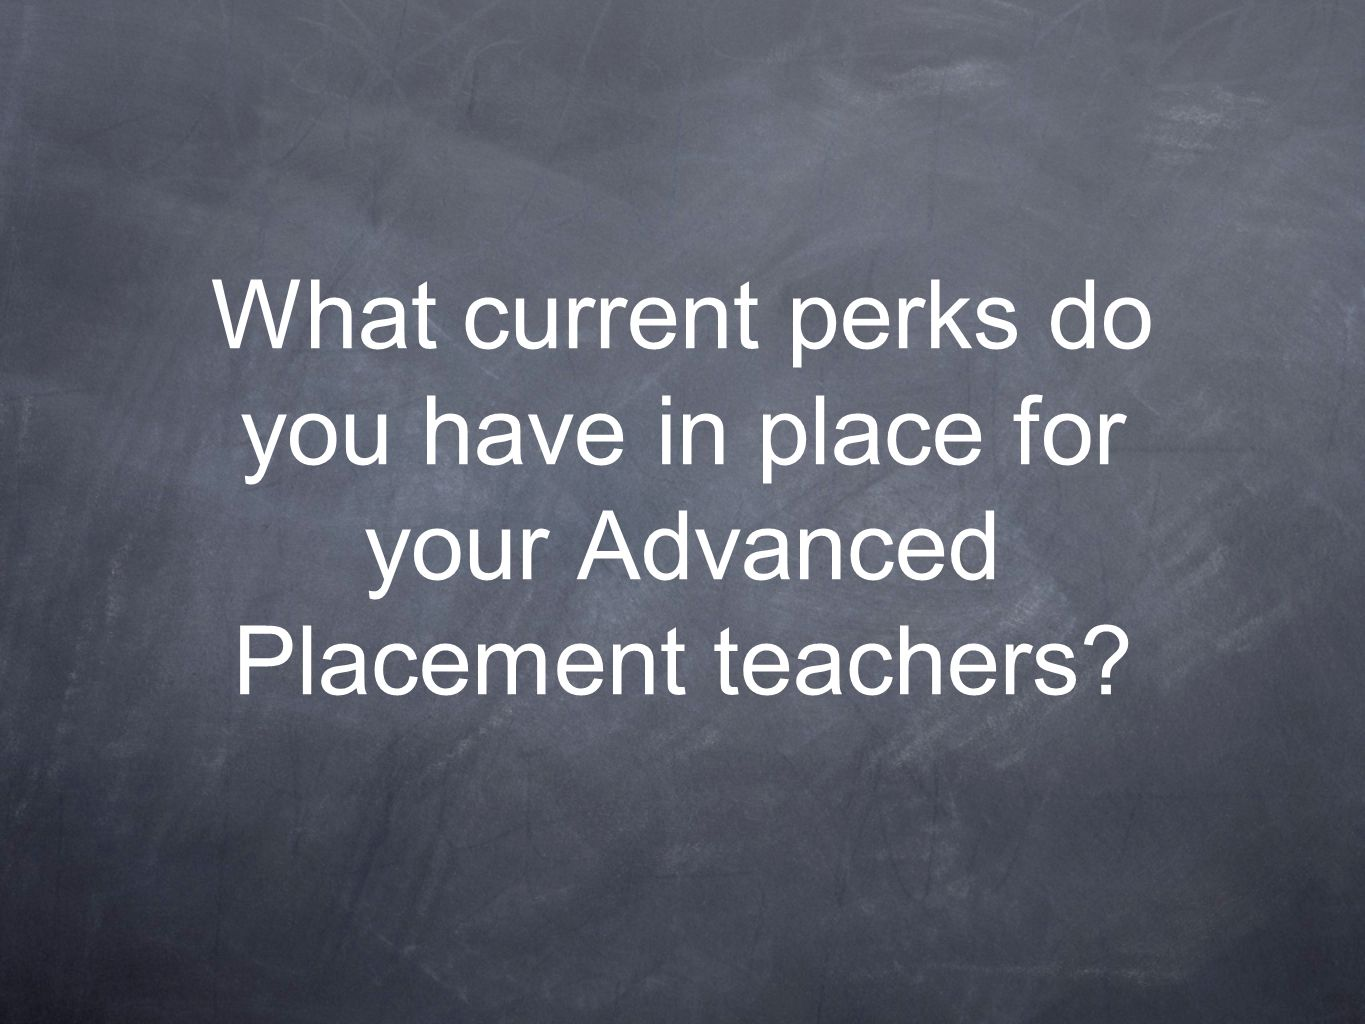 What current perks do you have in place for your Advanced Placement teachers?